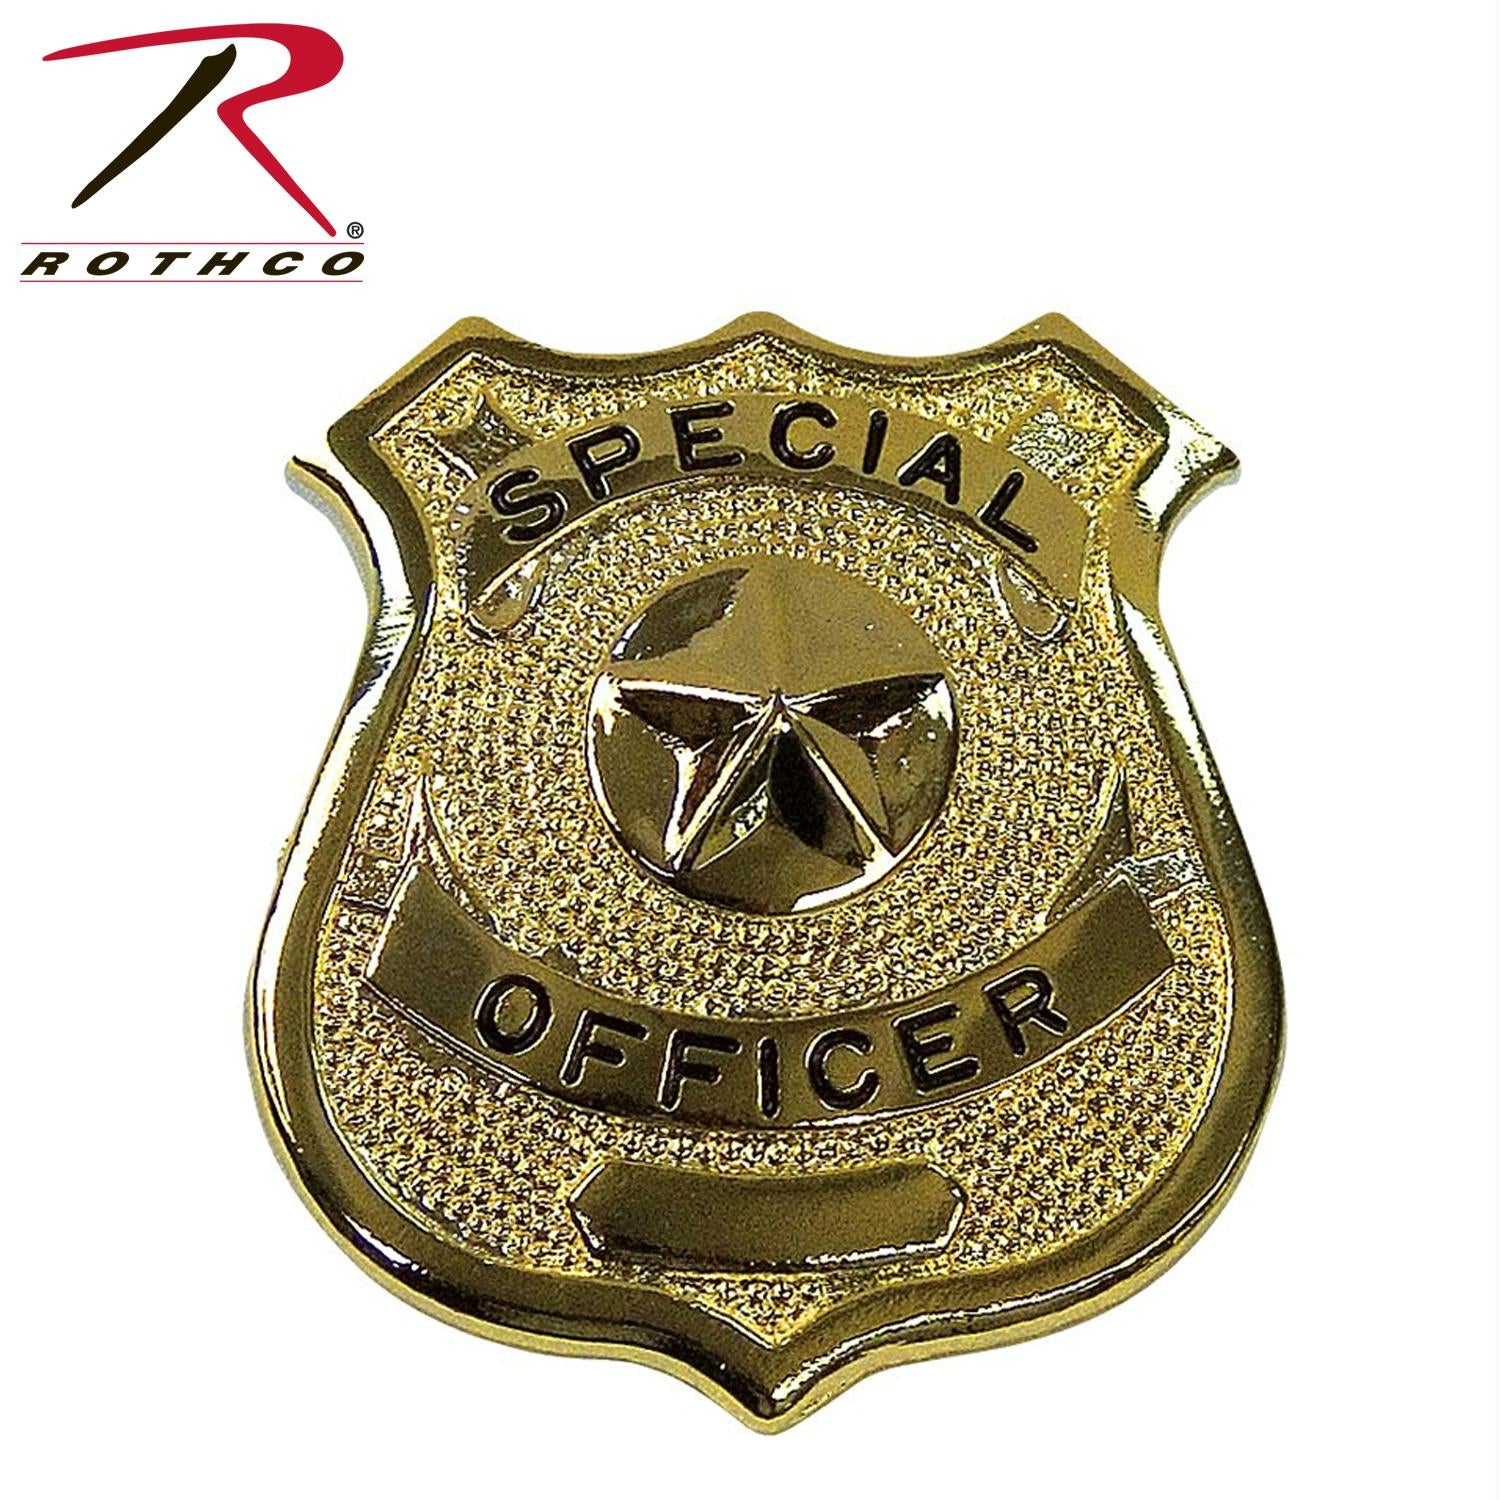 Rothco Special Officer Badge - Gold